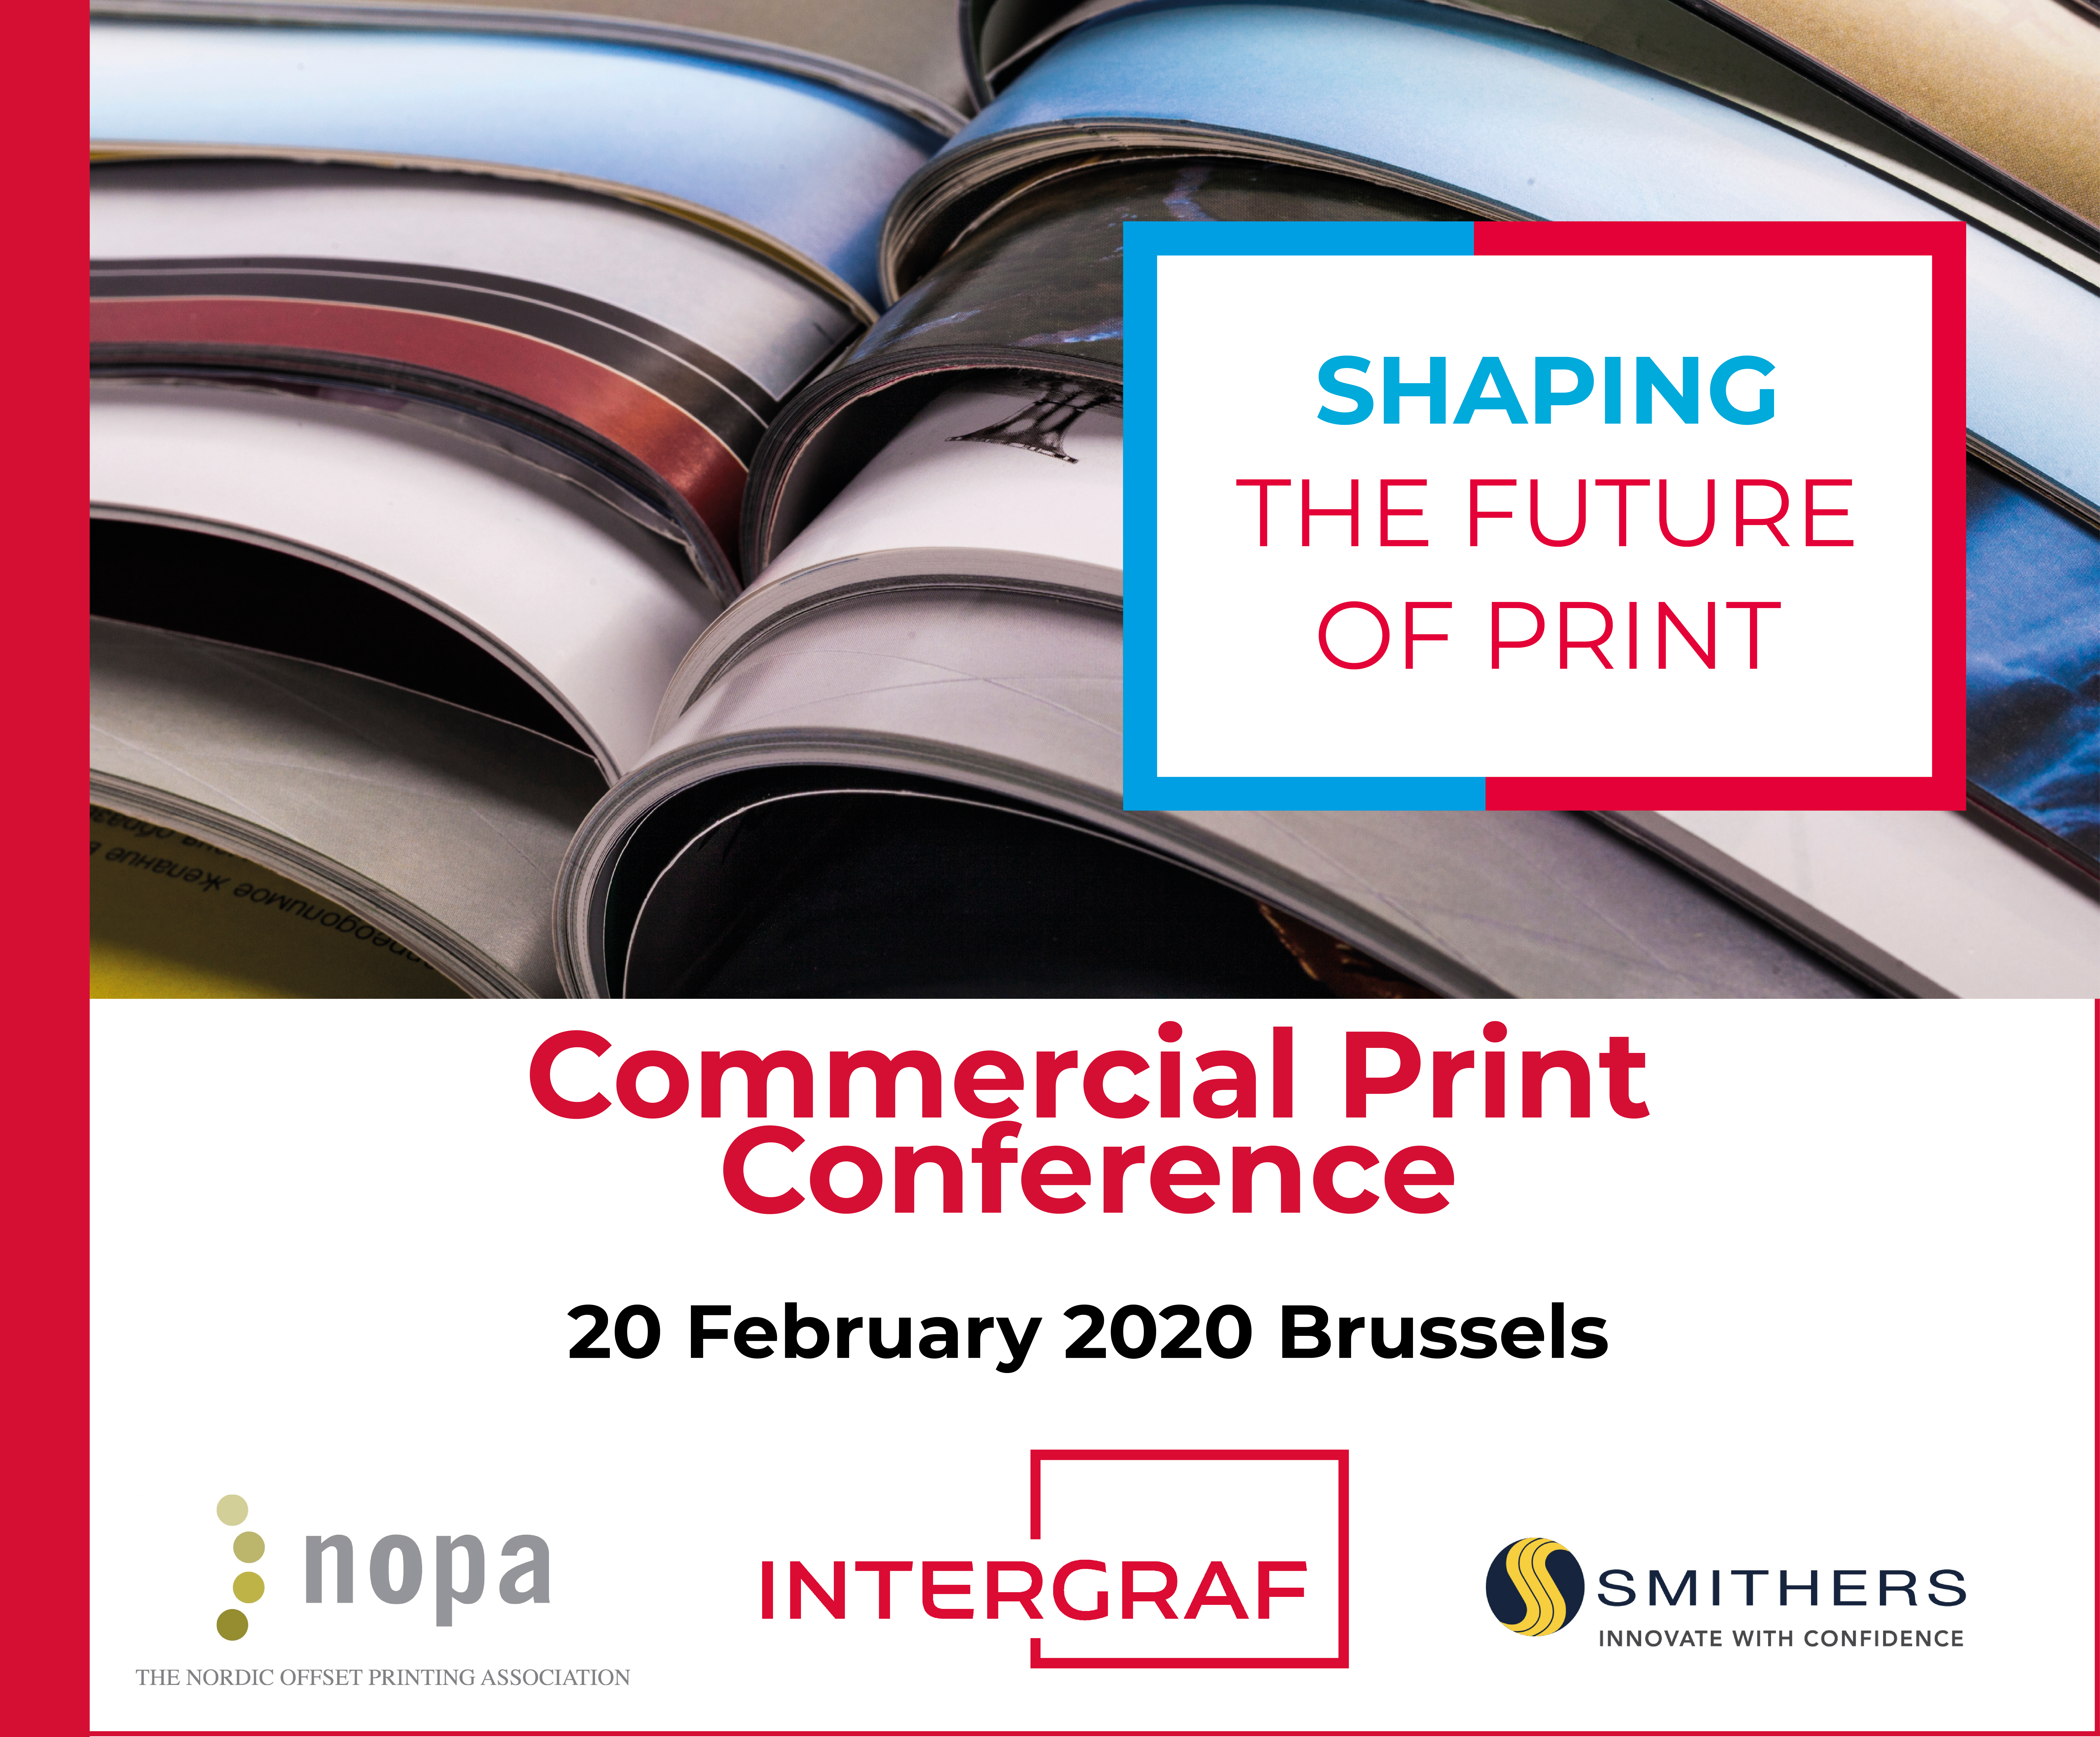 Intergraf - shaping the future of print - commercial print conference 2020